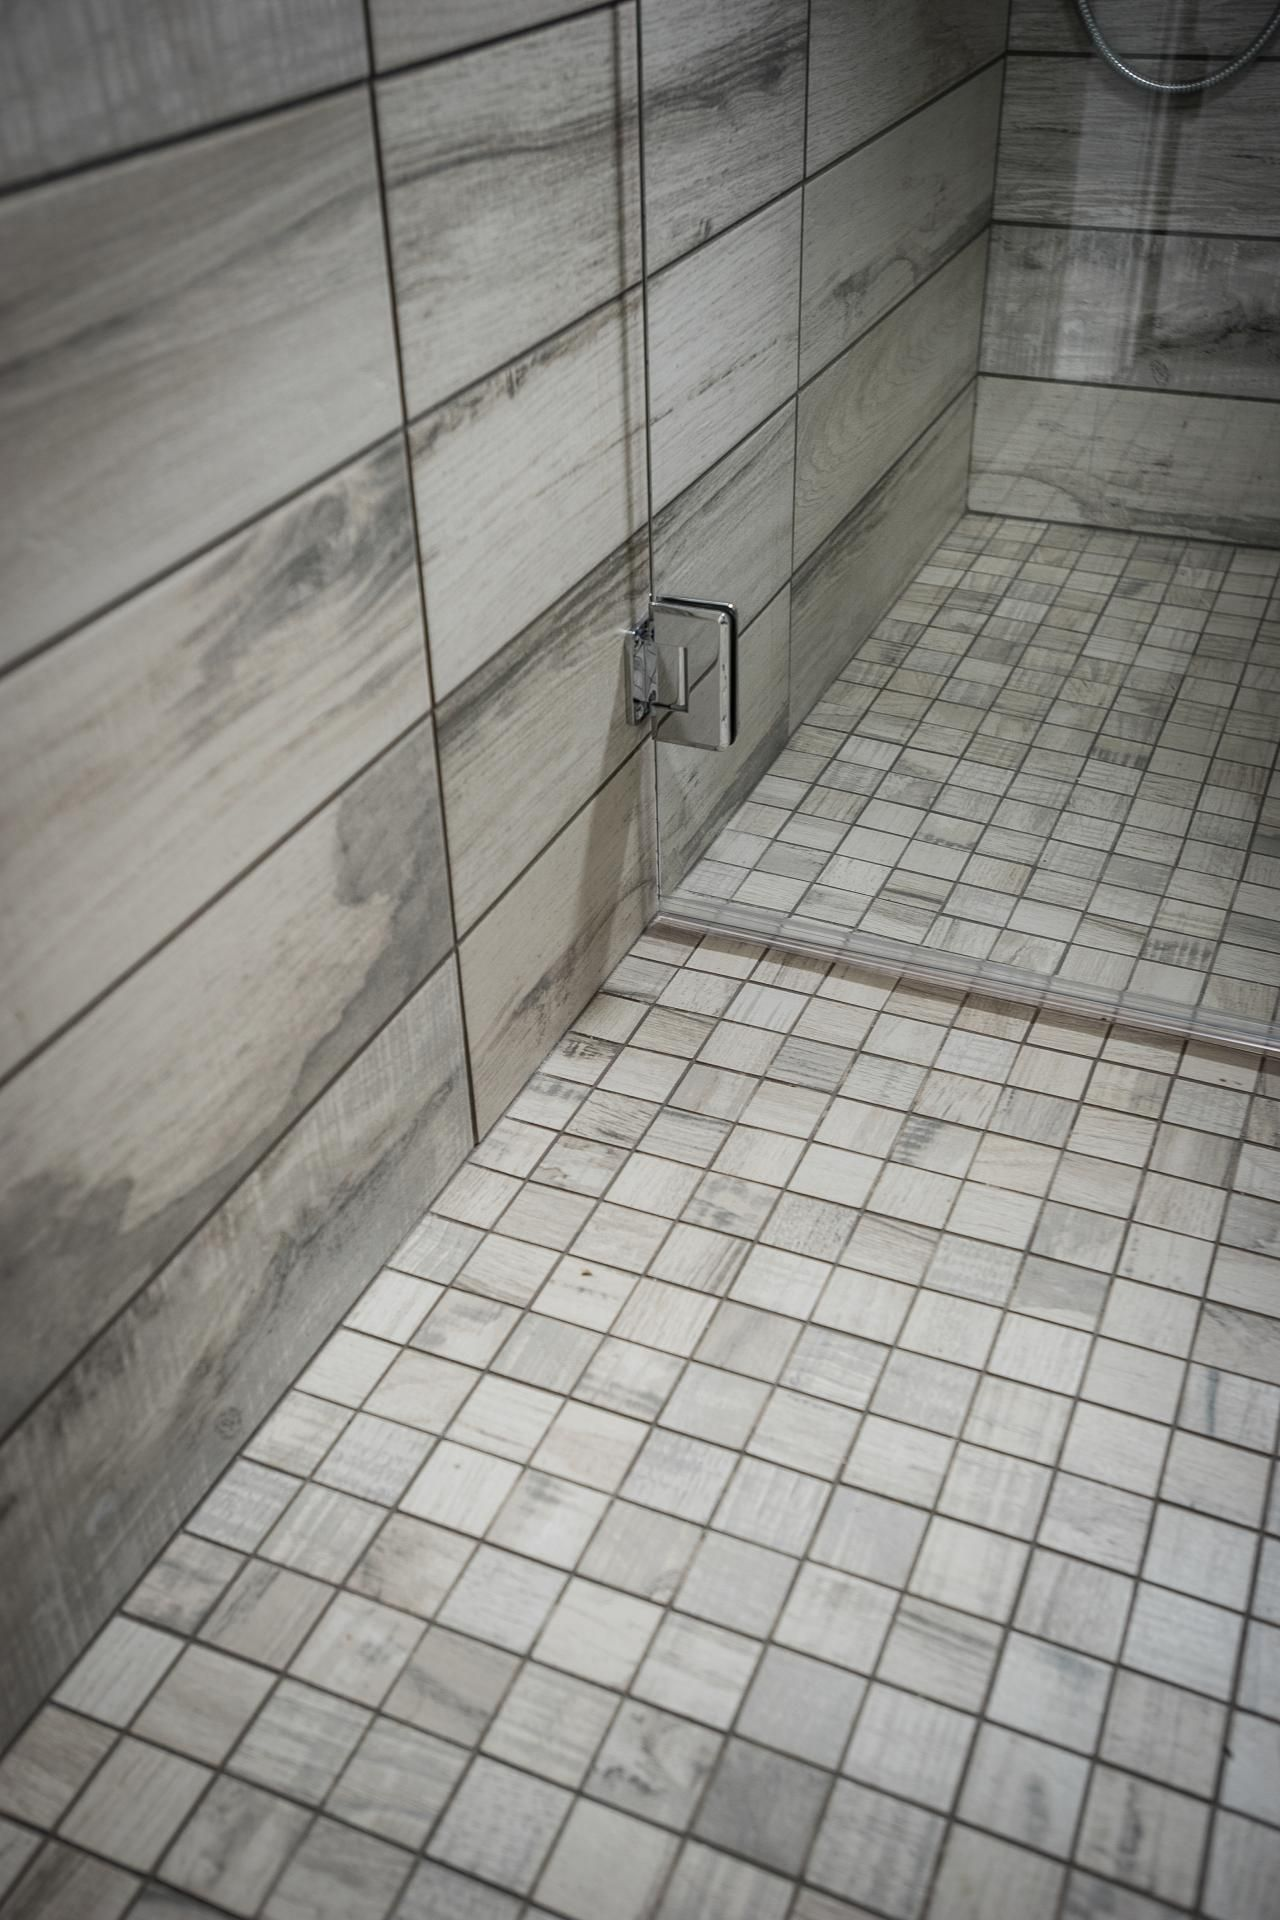 Faux wood tiles - Meant To Imitate Reclaimed Oak, Porcelain Tiles Display The Rugged